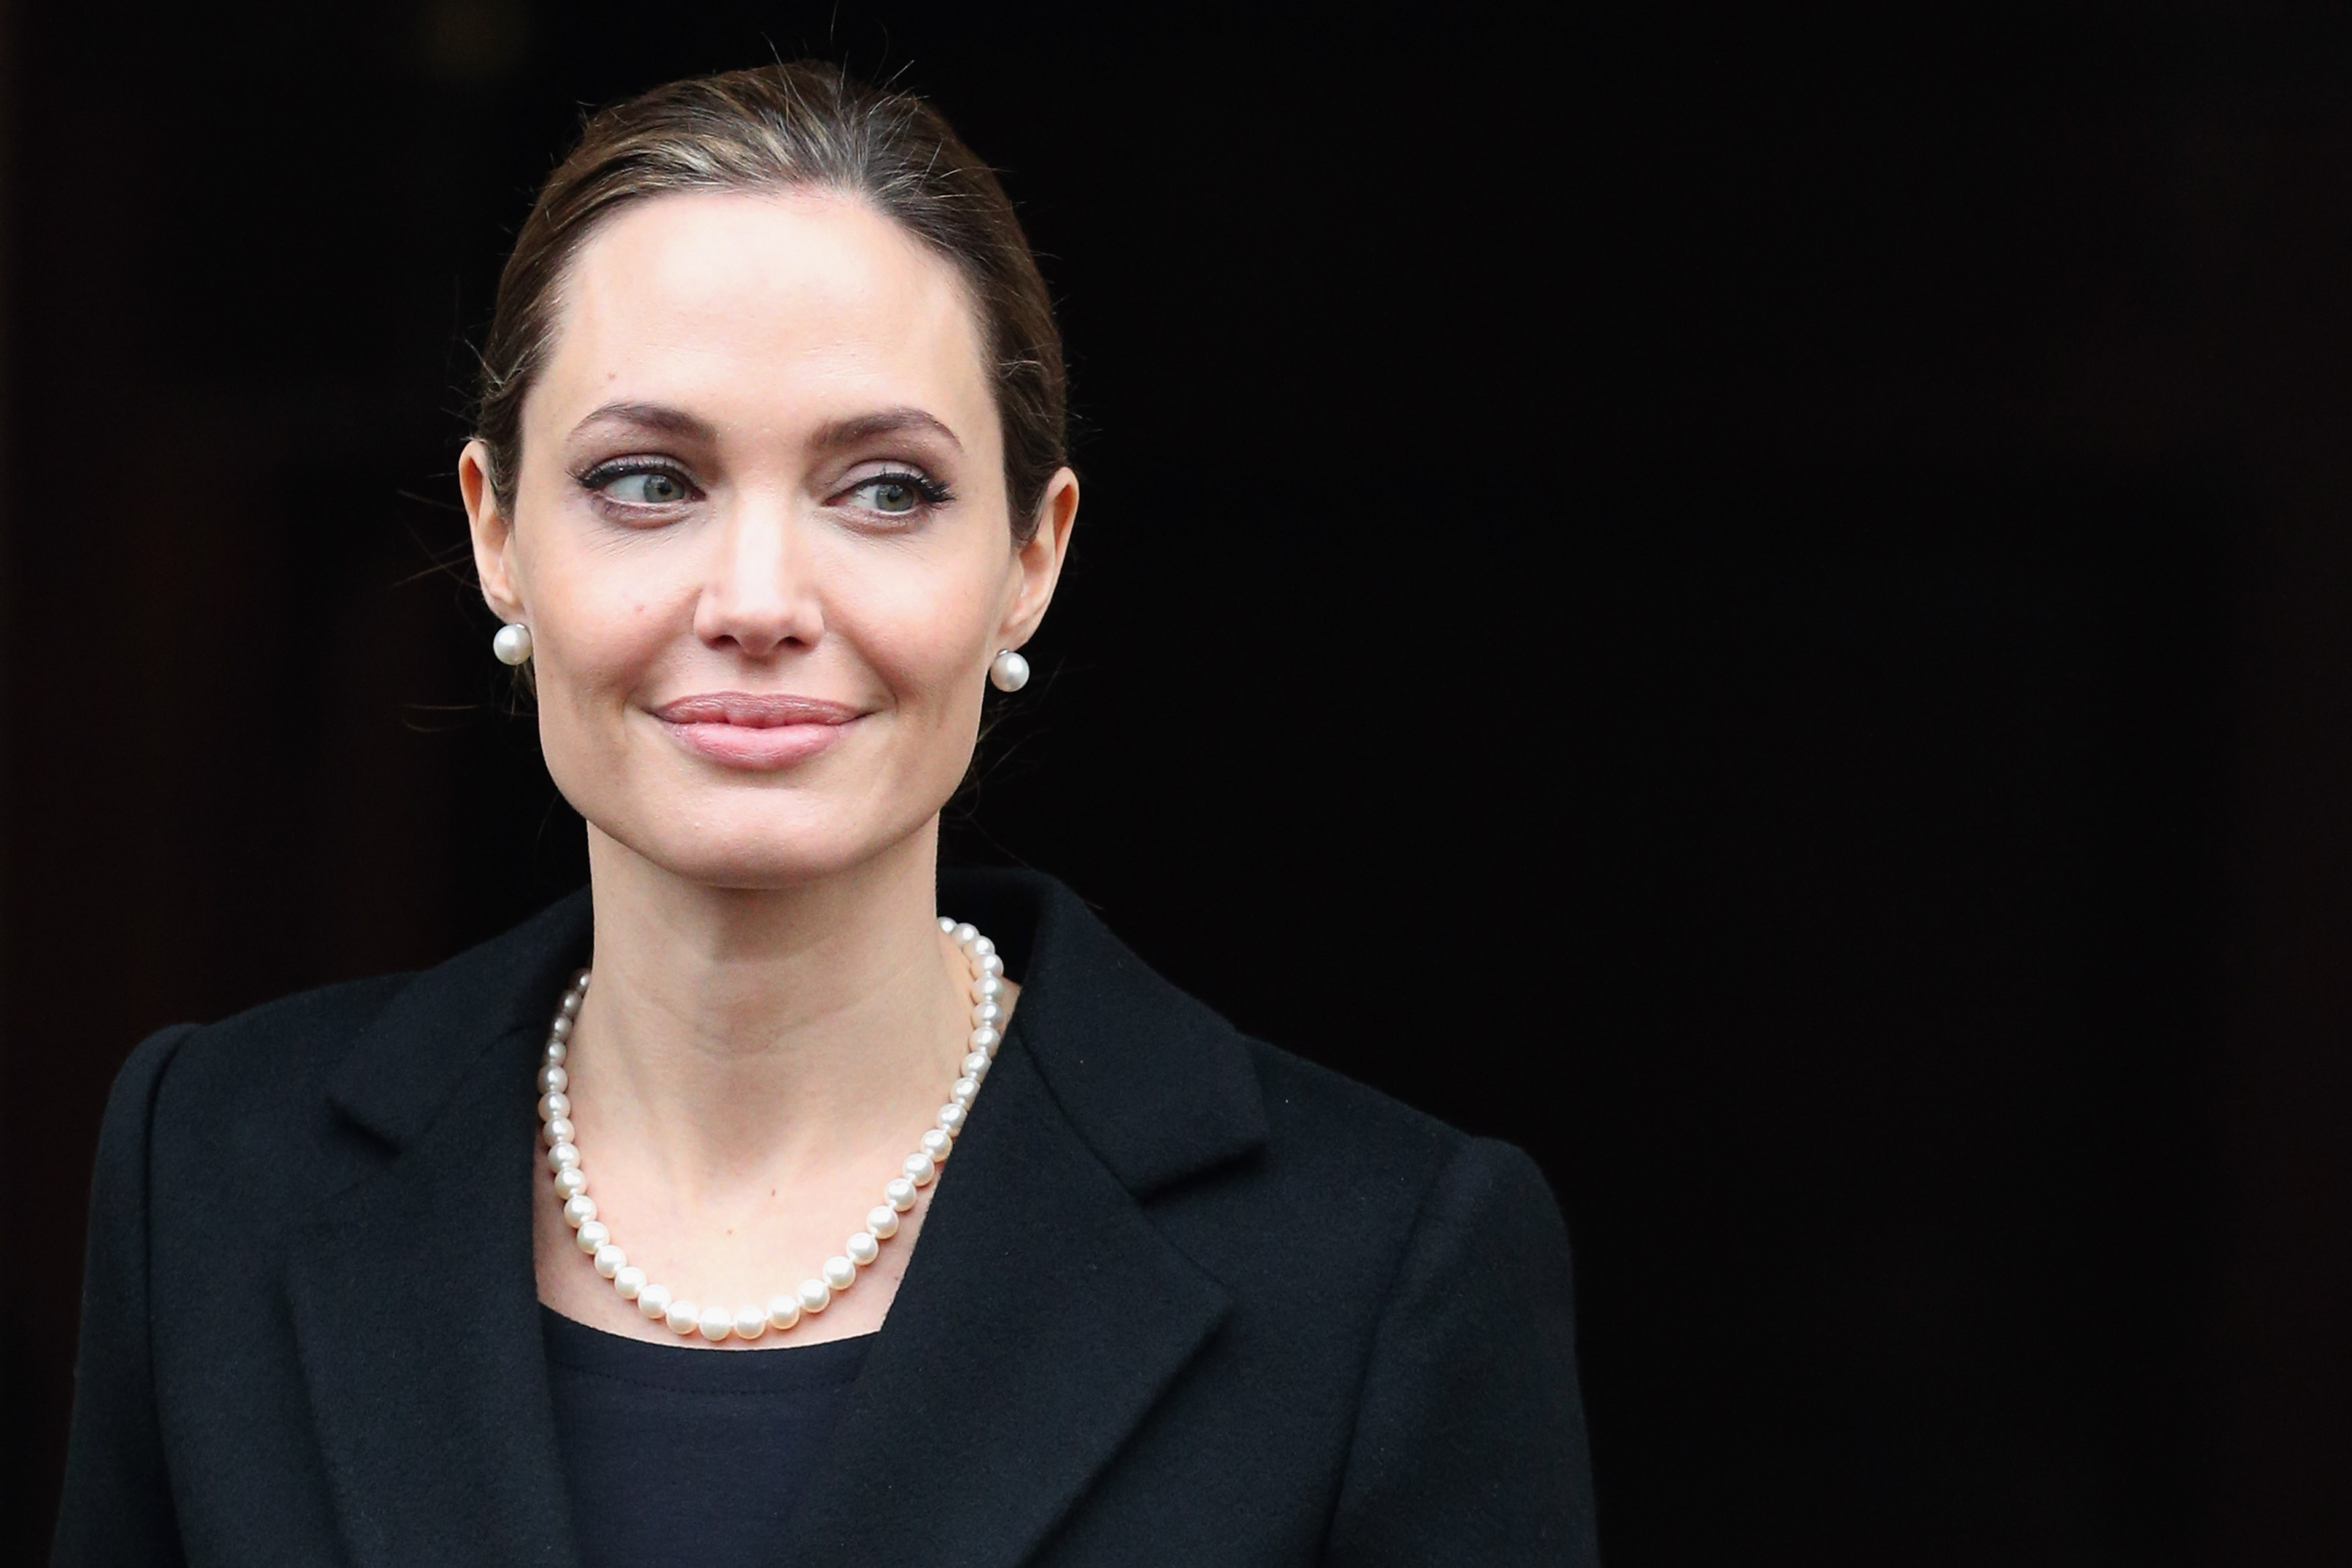 Actress Angelina Jolie leaves Lancaster House after attending the G8 Foreign Minsters' conference on April 11, 2013 in London.